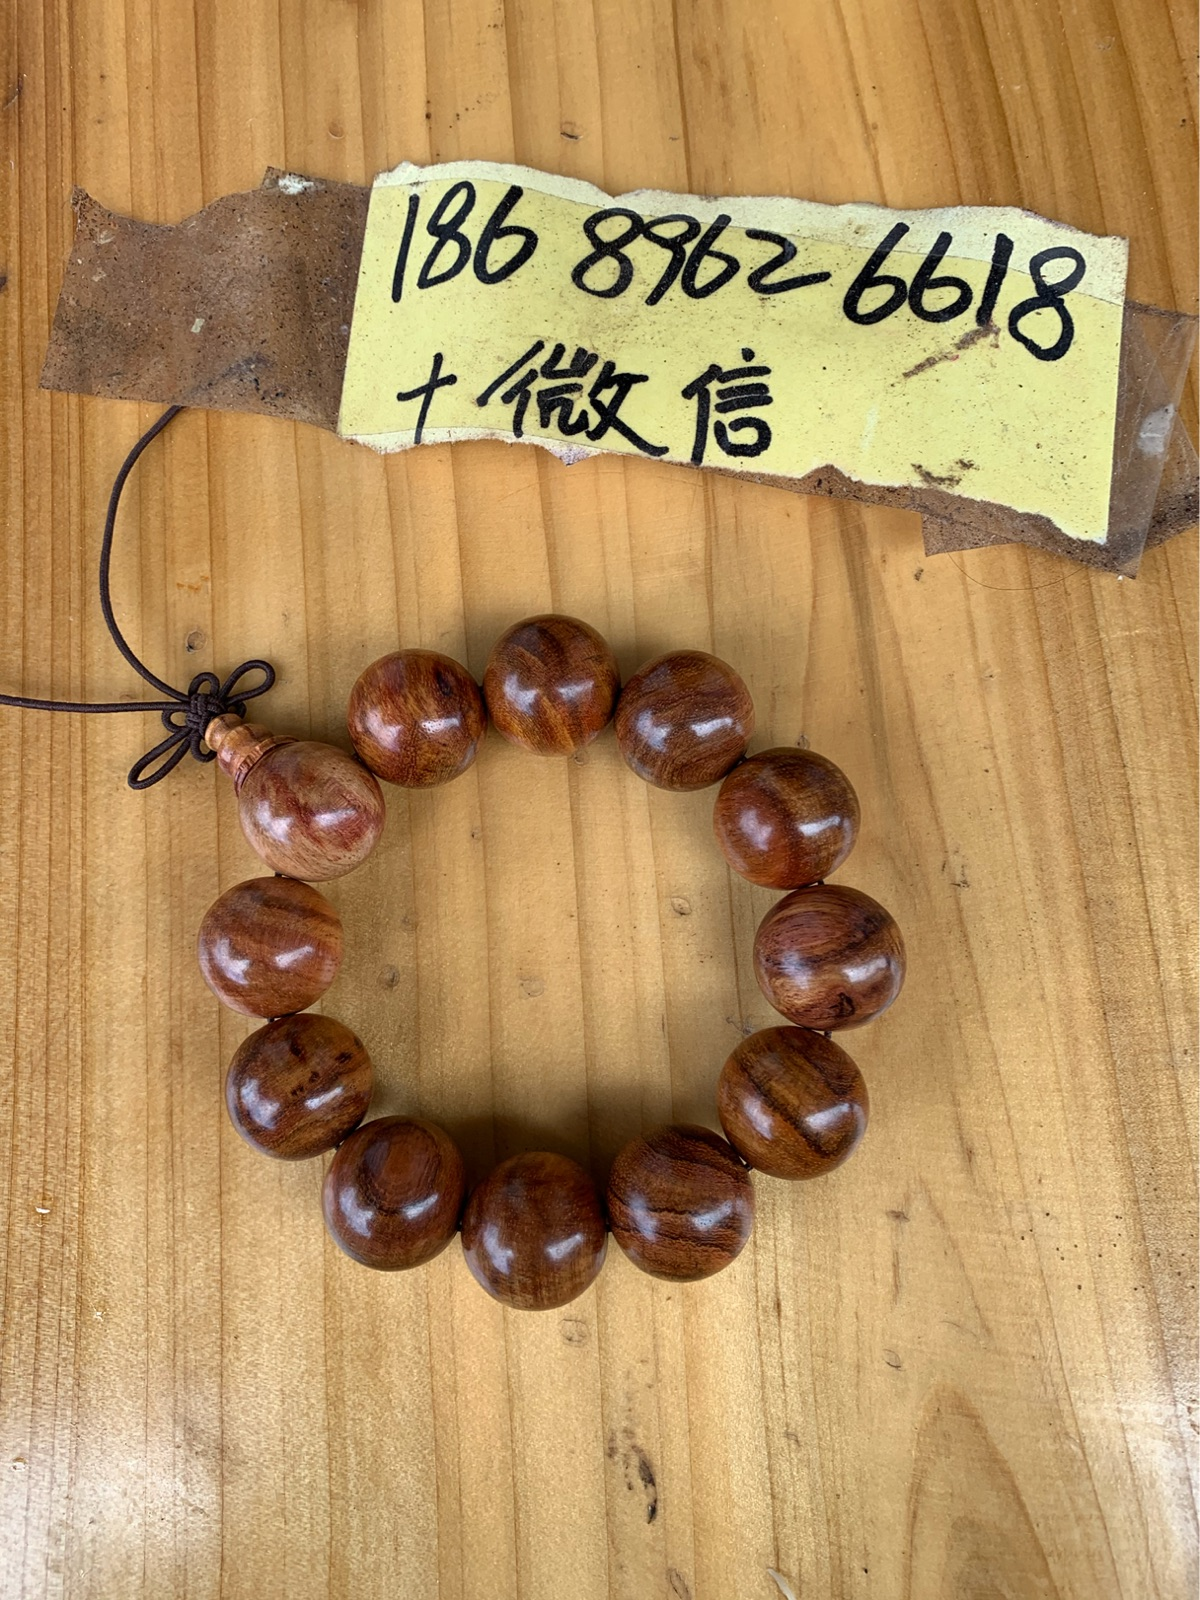 (Fidelity) Hainan Huanghua pear to the eye x pattern male woman 2.0 hand string Buddha beads special benefits only this one